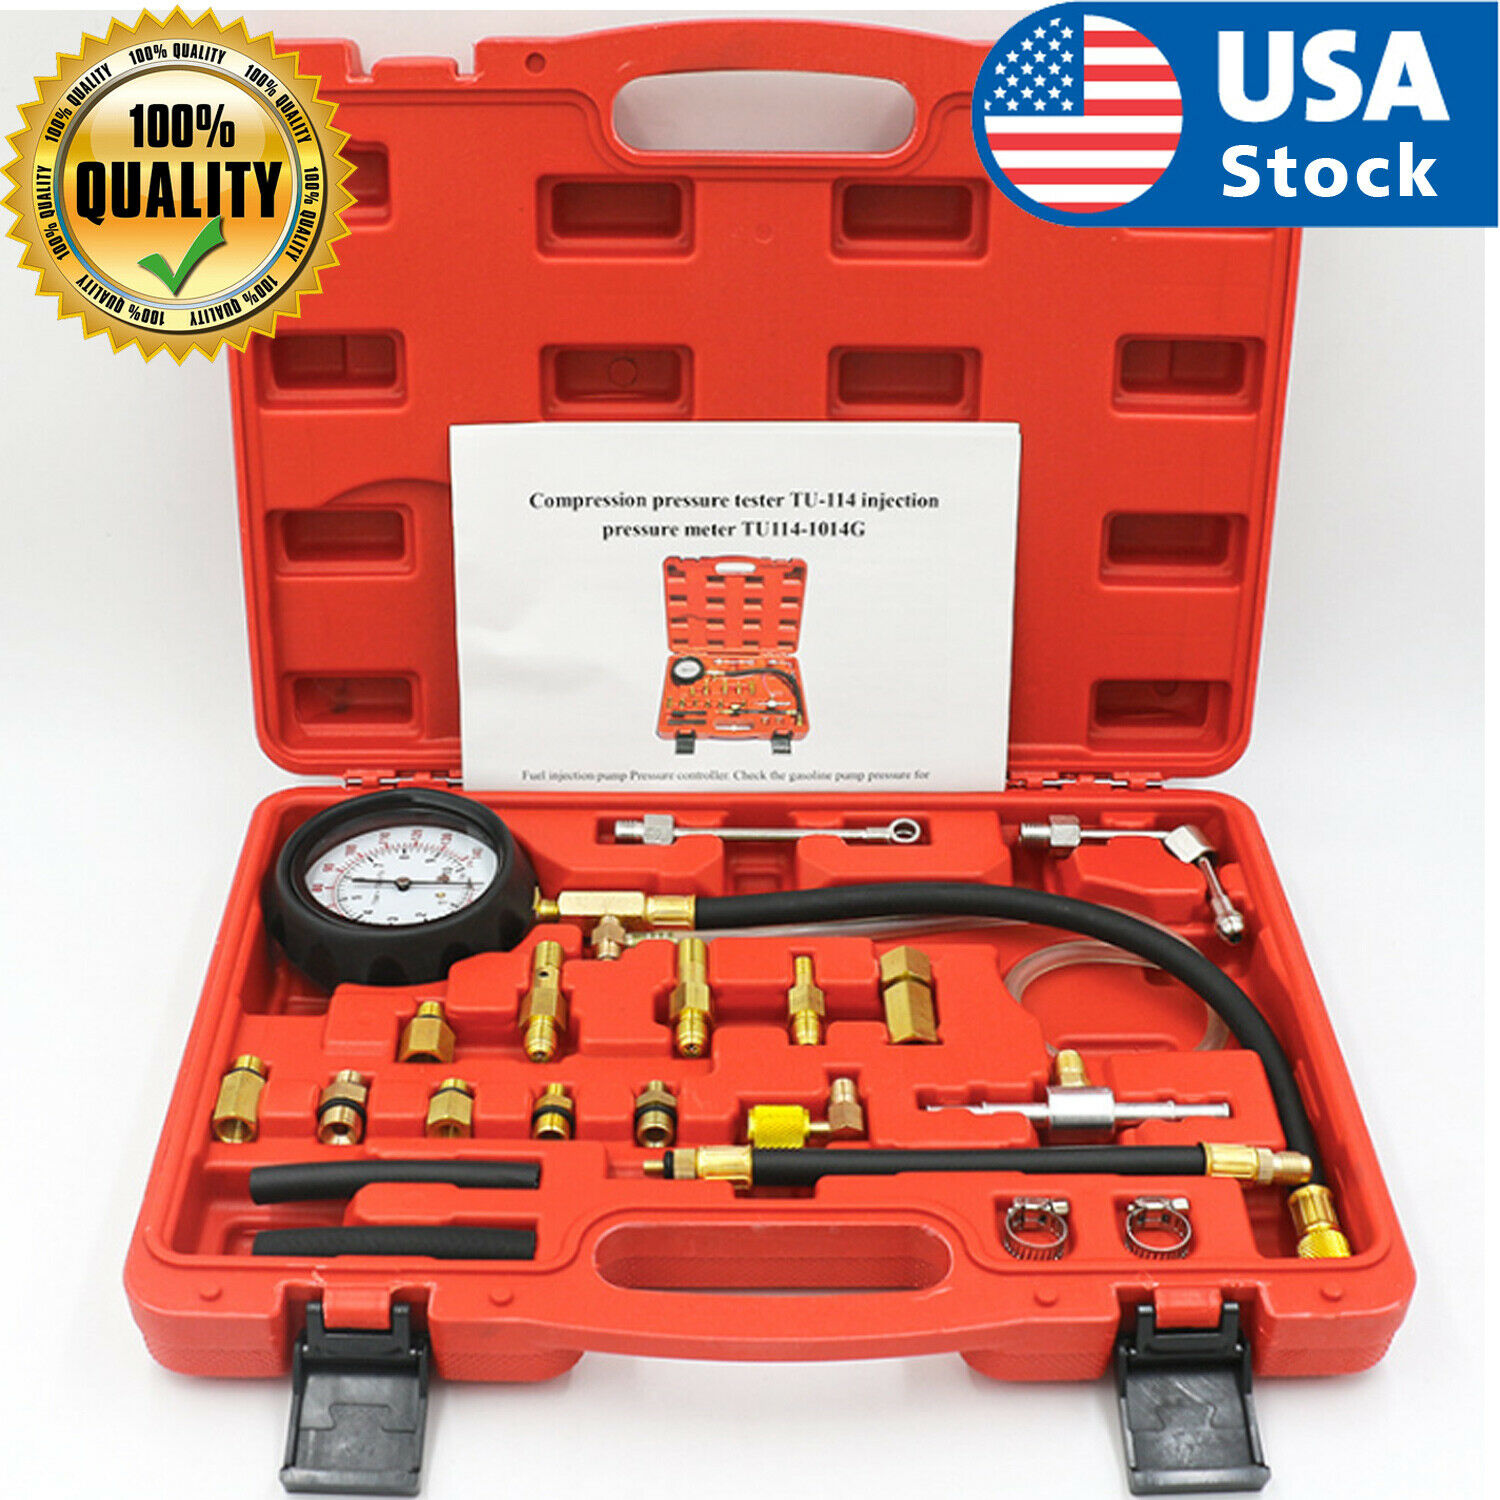 Fuel Injection Pump Pressure Tester Manometer Gauge System Test Kit For Car Auto Automotive Tools & Supplies